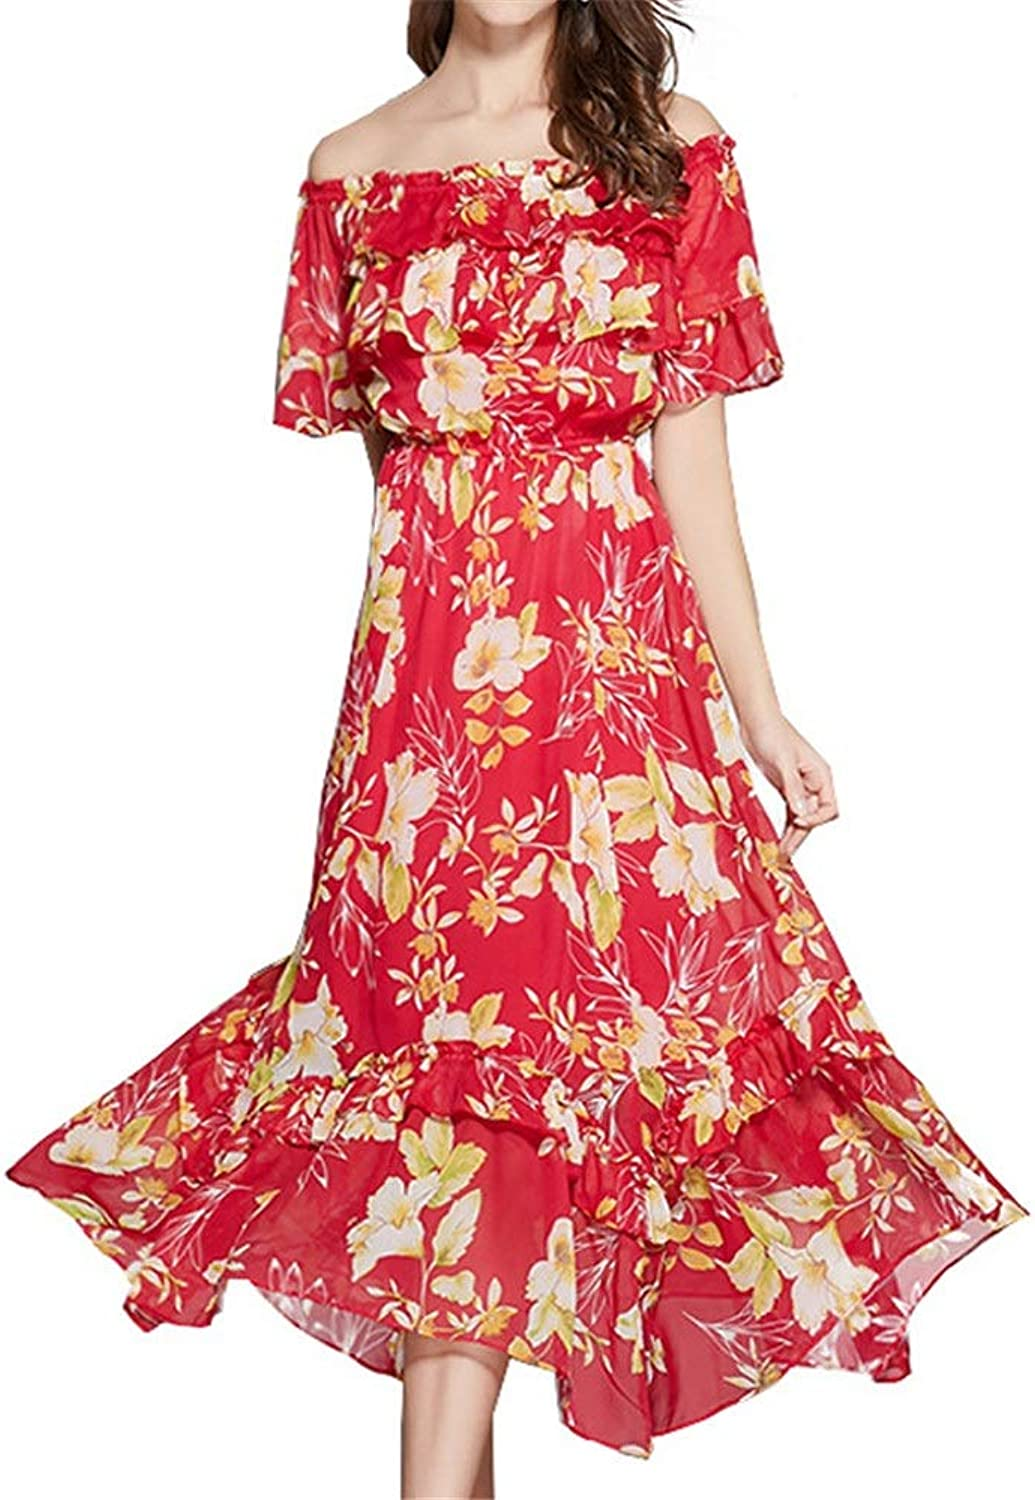 Ladies Summer Loose Casual Dress Women Off Shoulder Short Sleeve Flower Swing Maxi Dress Casual Evening Formal Aline Dress Elegant Cocktail Wedding Party Prom Dress Boho Beach Dress For Summer Shoppi